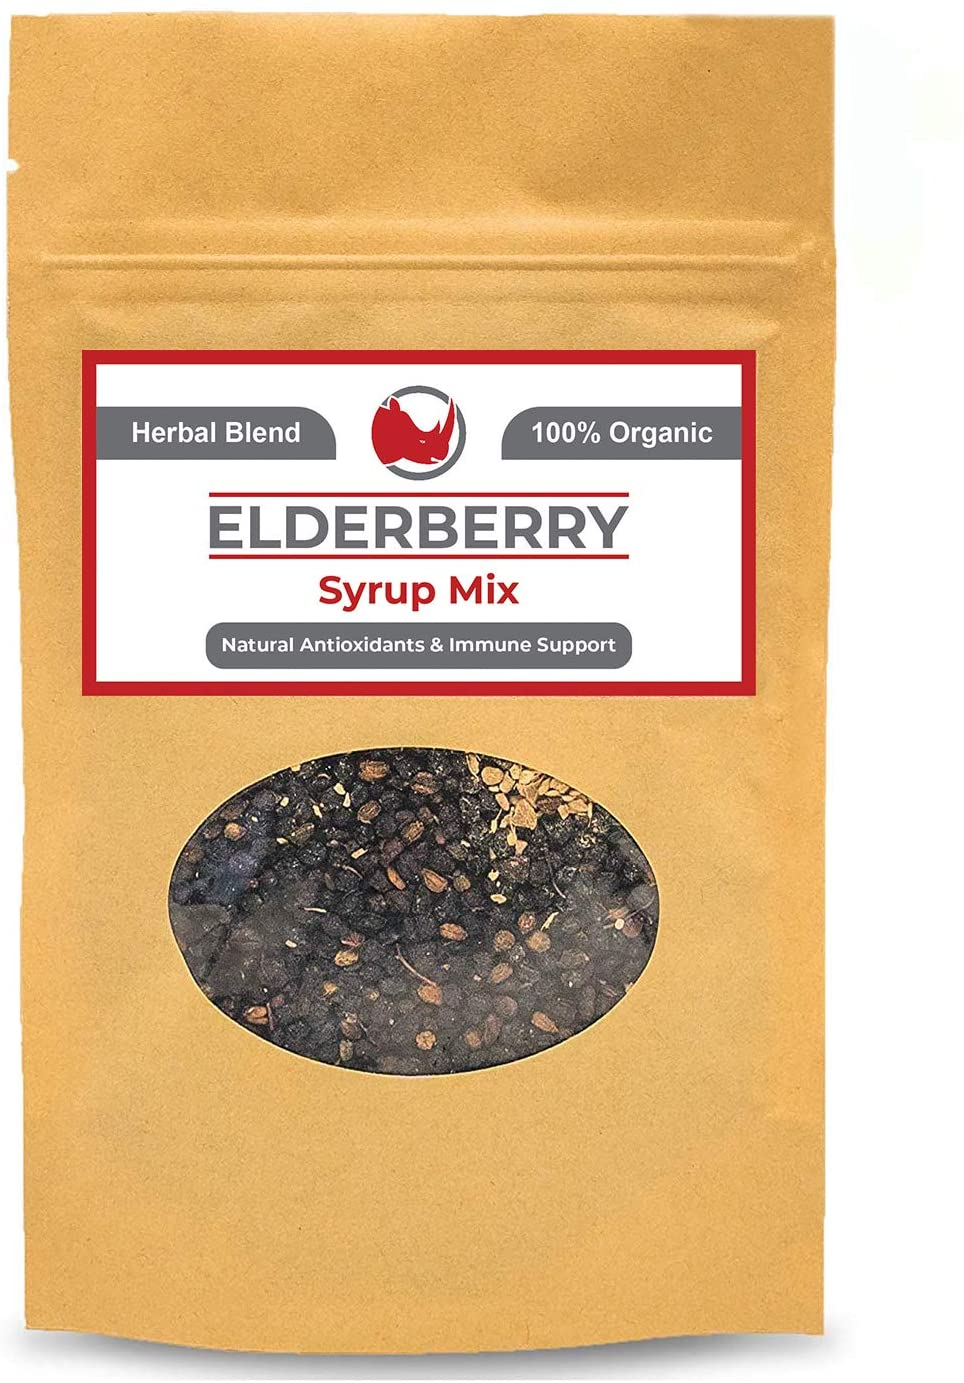 Organic Elderberry Syrup DIY Kit (Makes 18oz) Natural Immune Support with Antioxidants, Vitamins, Minerals - Great for Kids and Adults